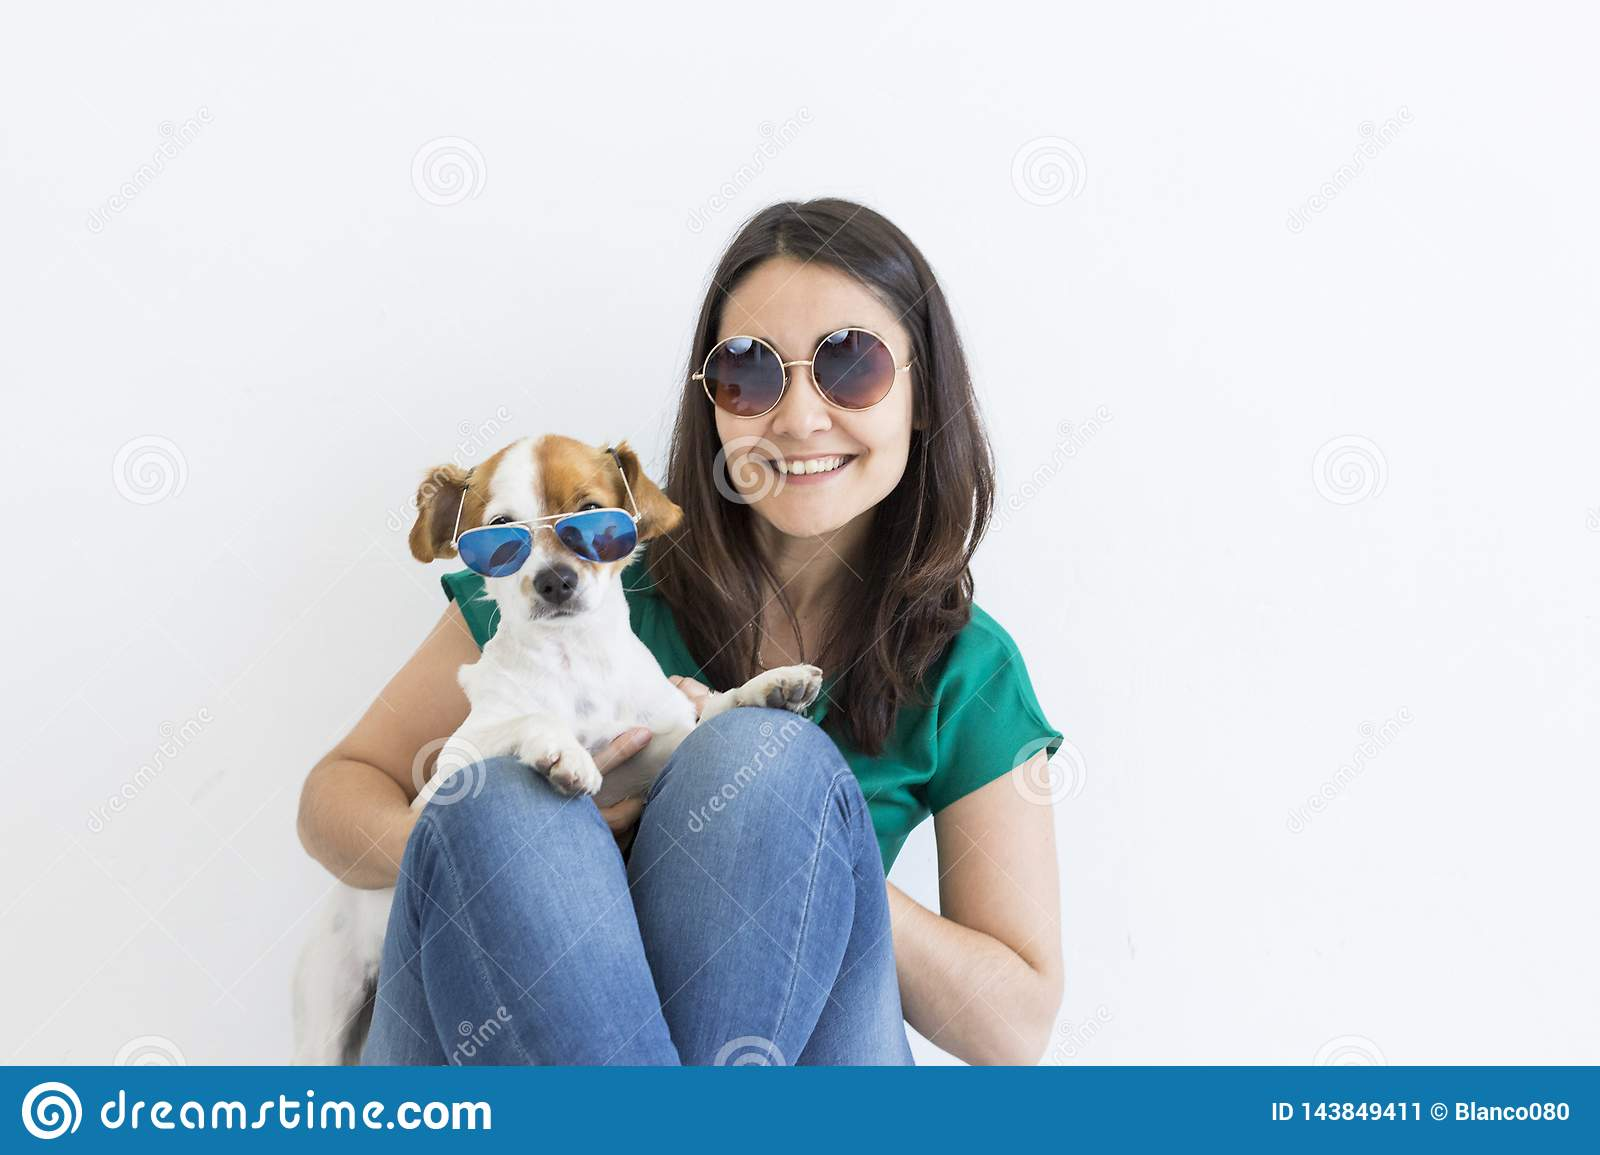 Beautiful young woman playing with her little cute dog at home. Lifestyle portrait. Love for animals concept. white background.